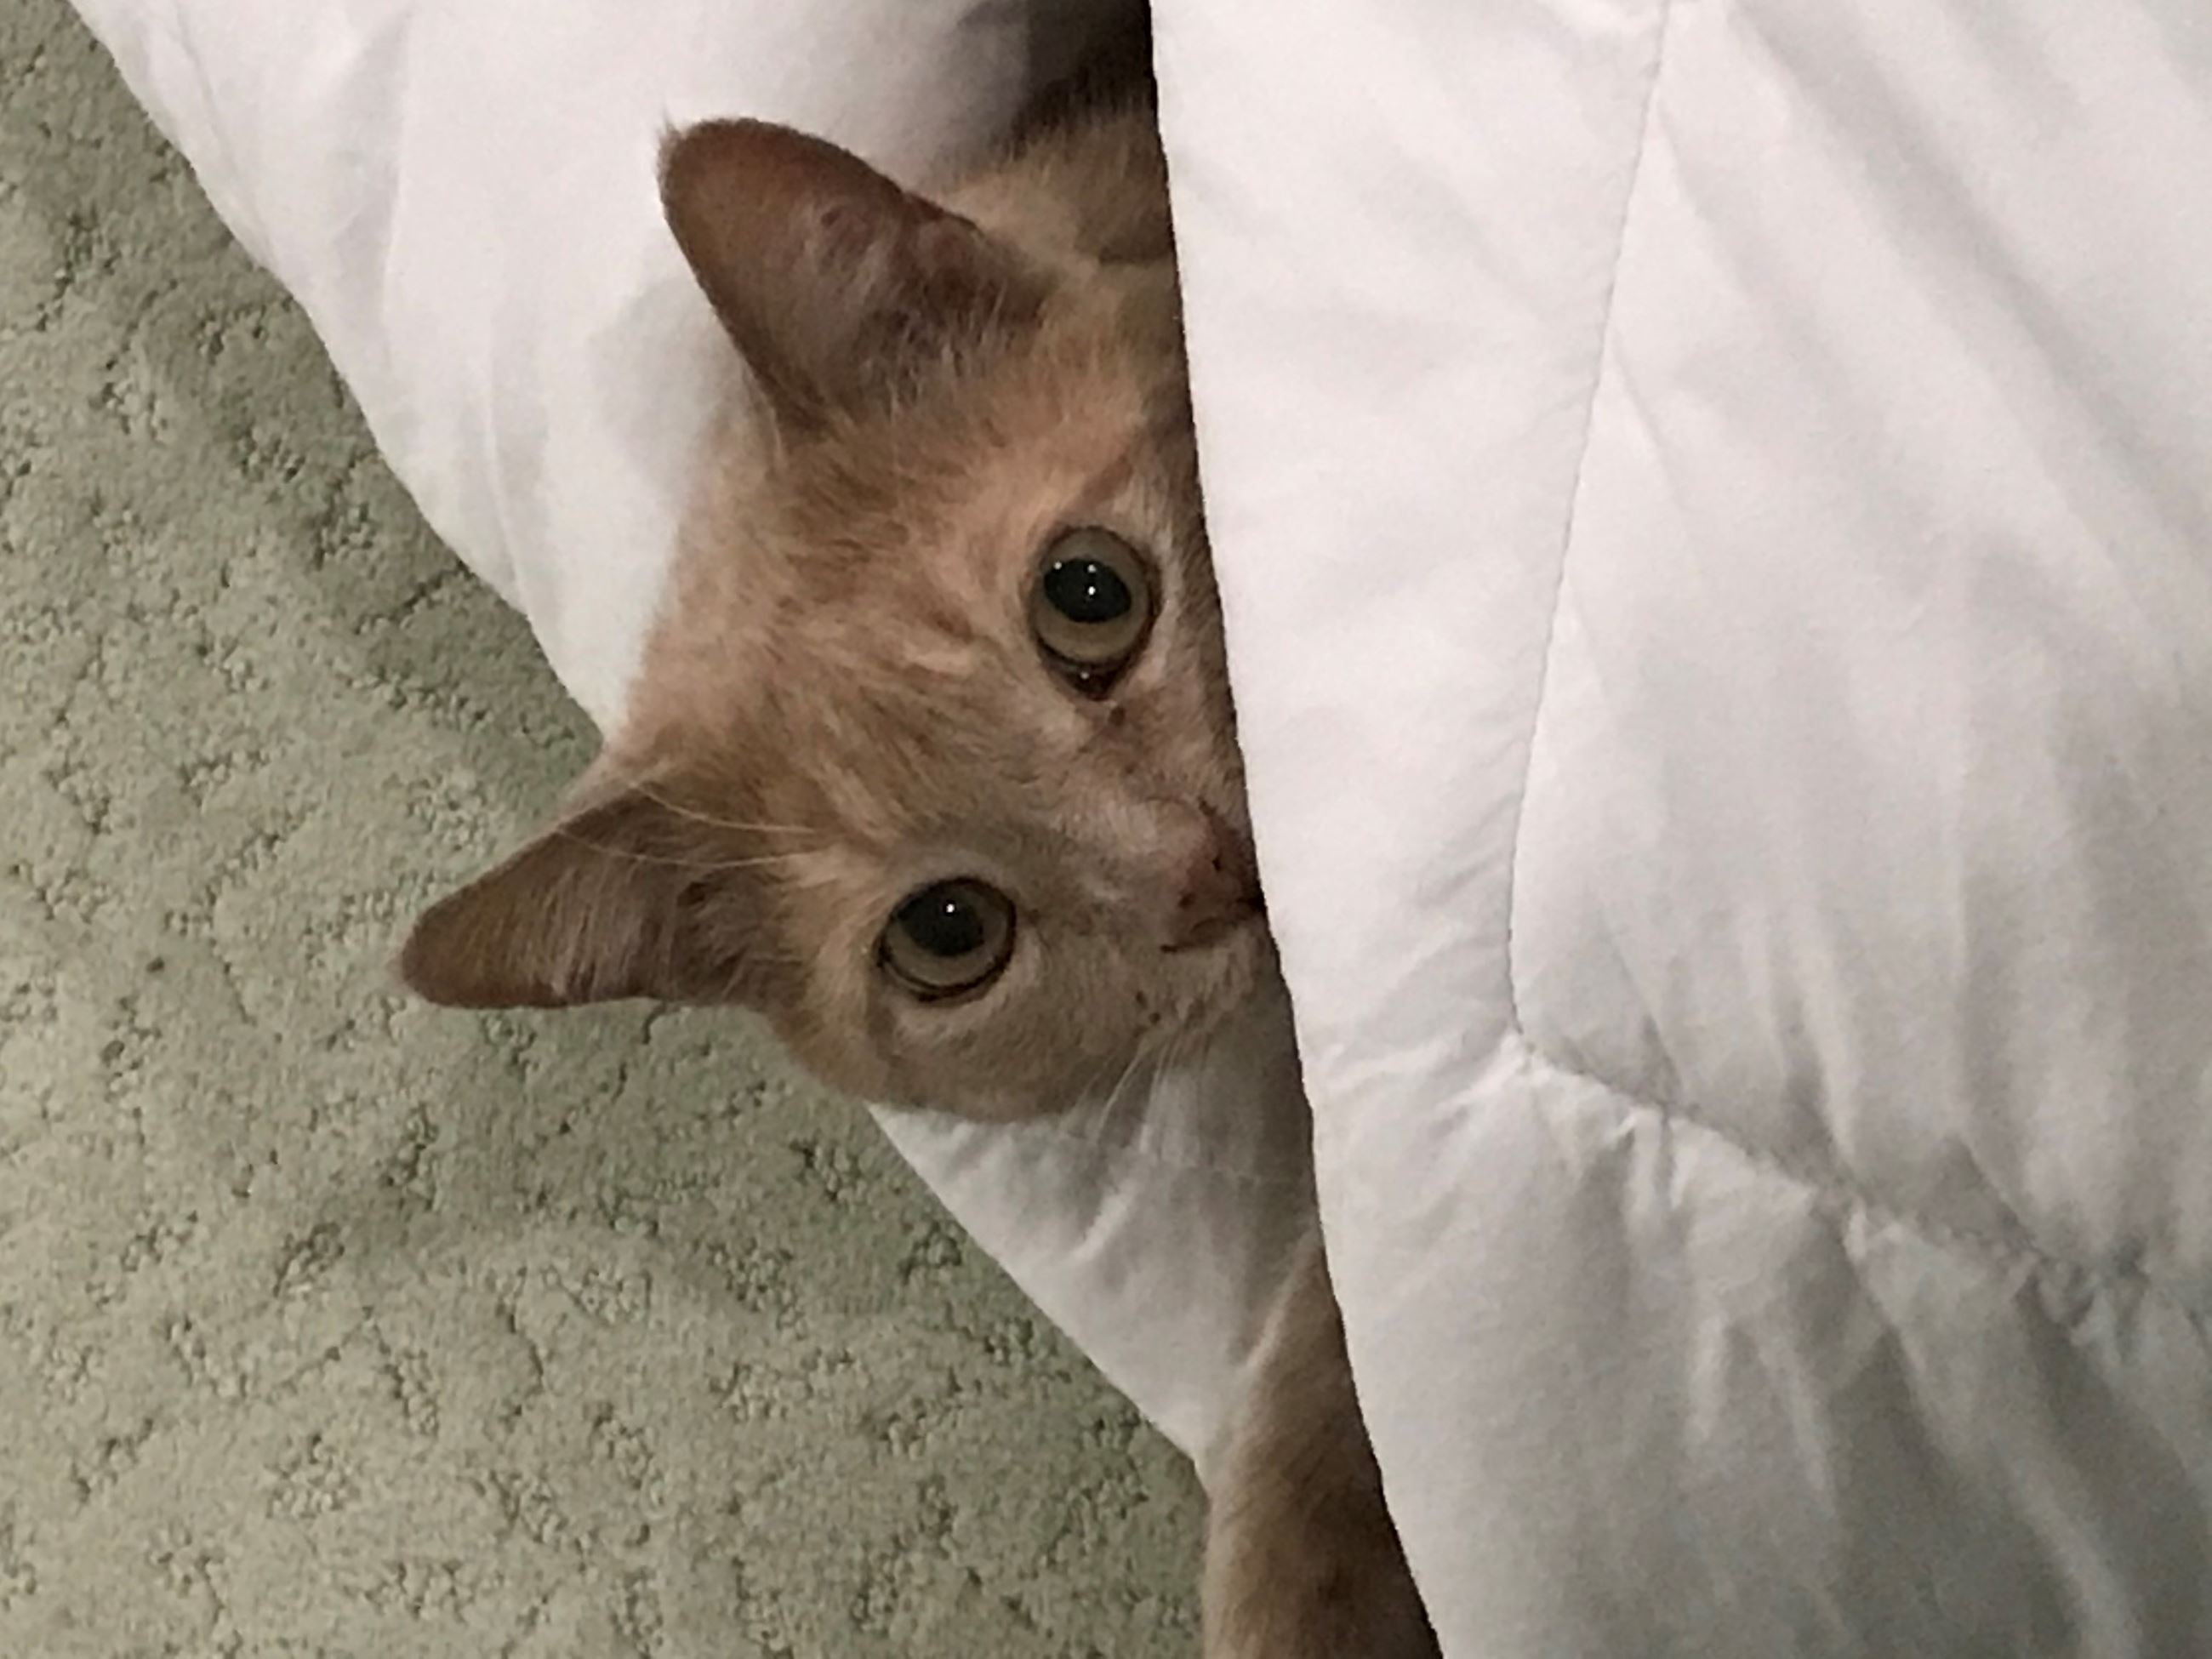 Buff kitty peeking out from the blanket